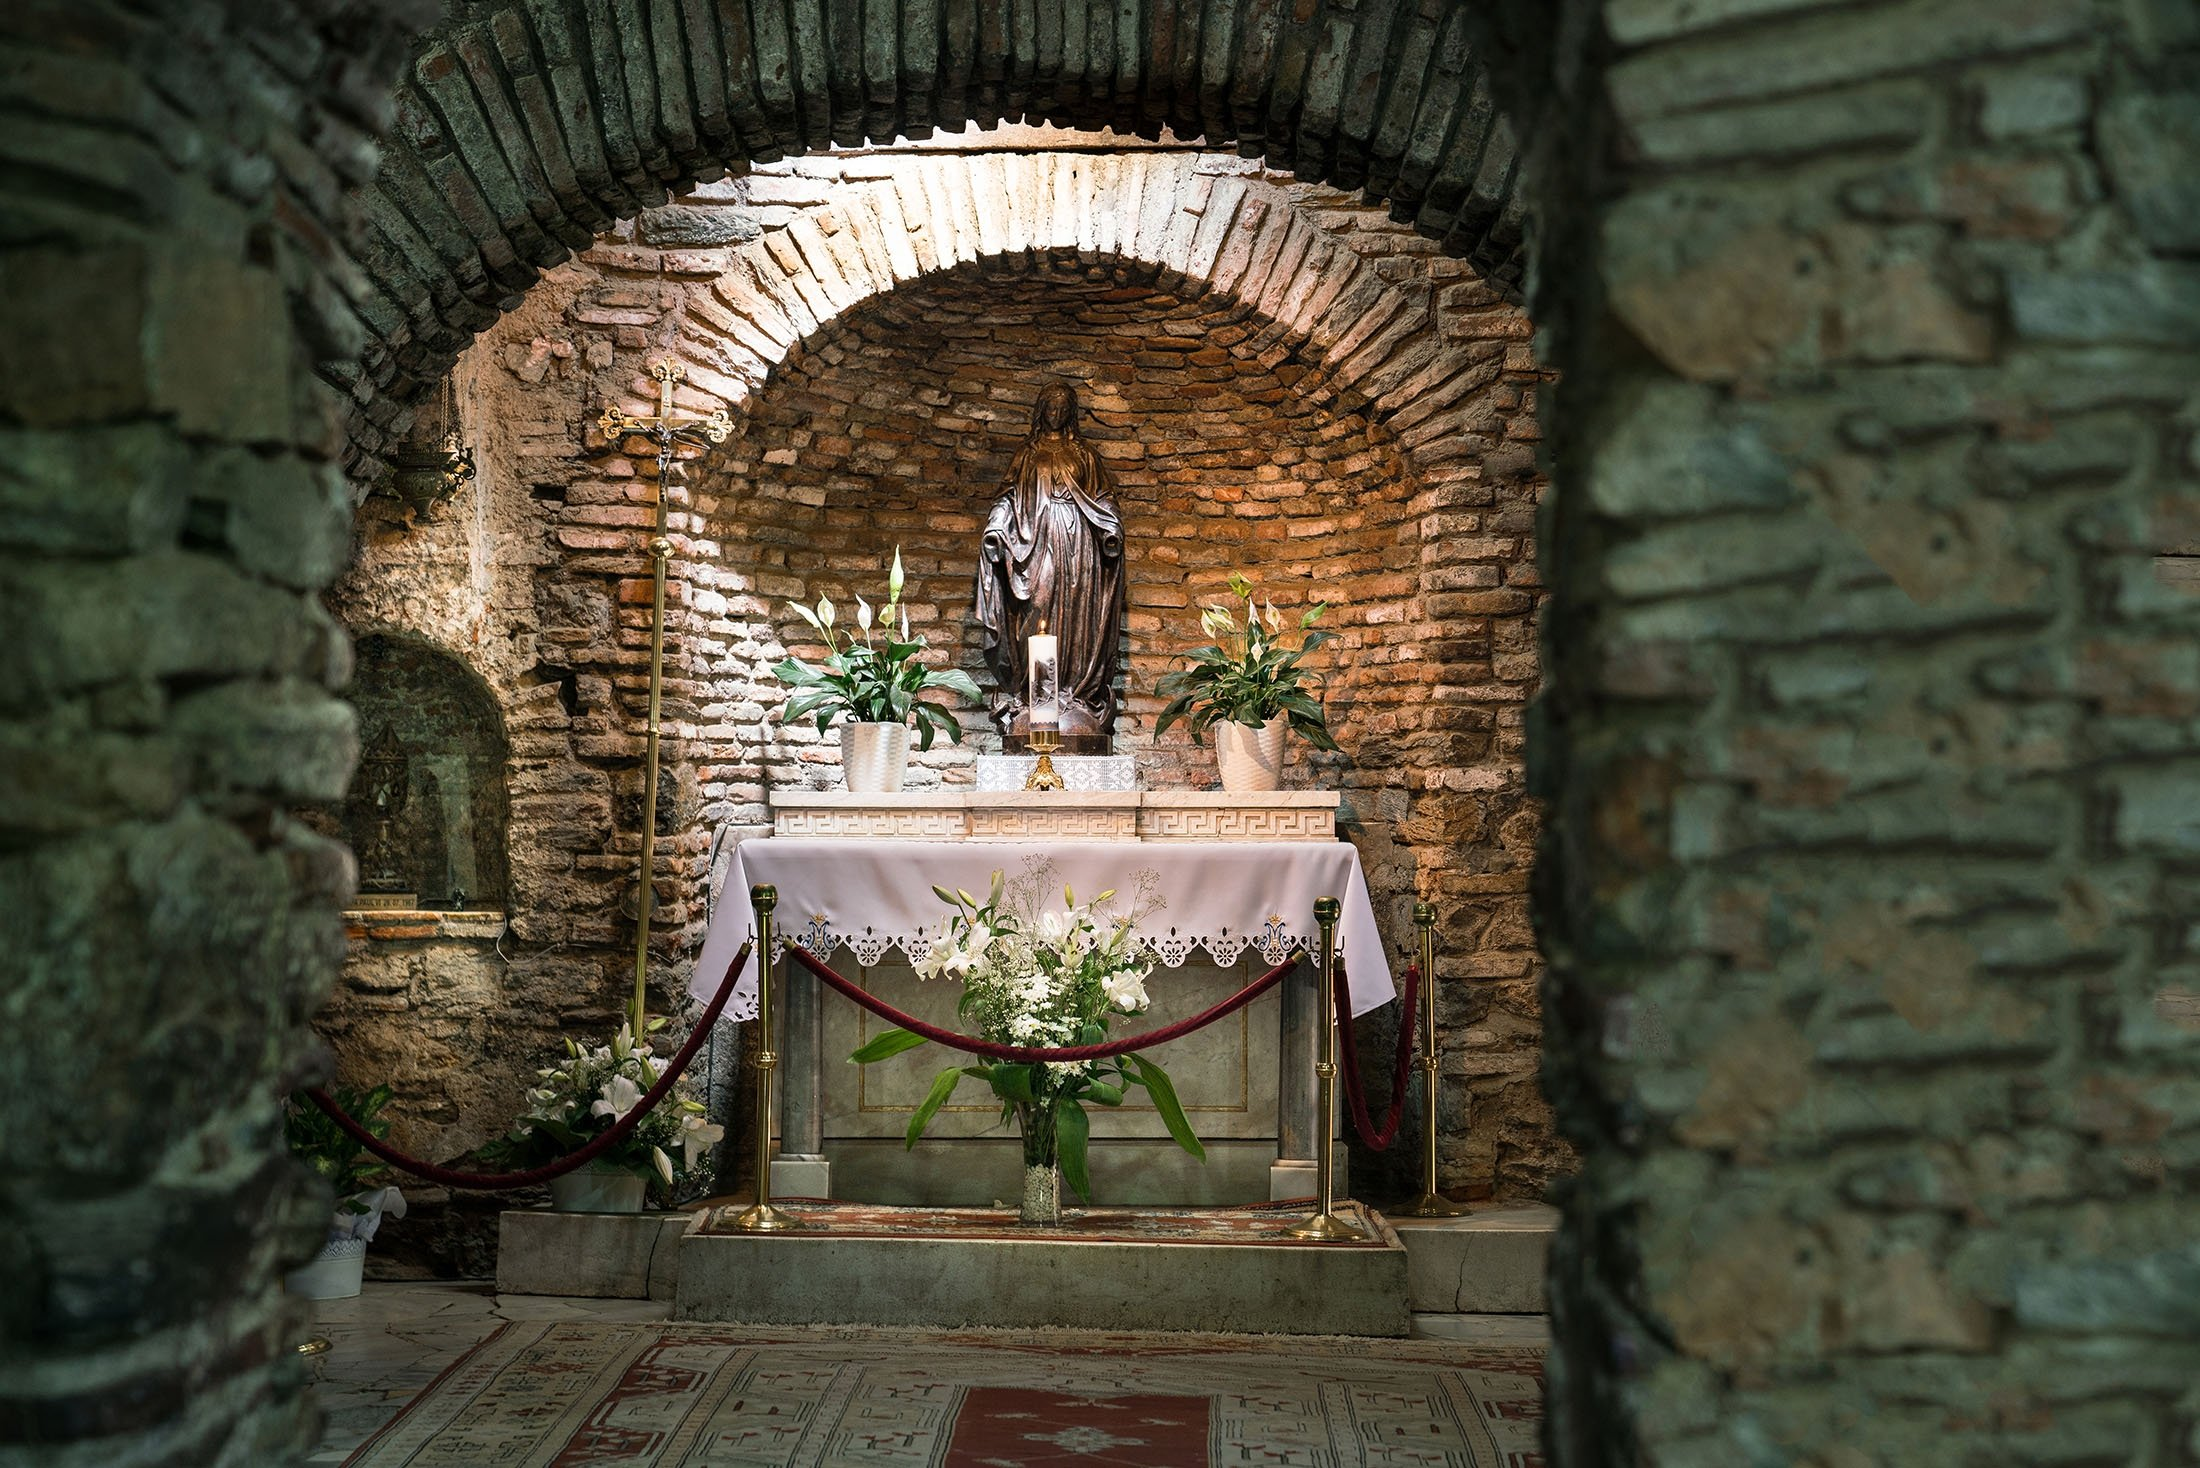 The House of Virgin Mary (Meryem Ana in Turkish) is believed to be the last home of Mary, the mother of Jesus. (Shutterstock Photo)